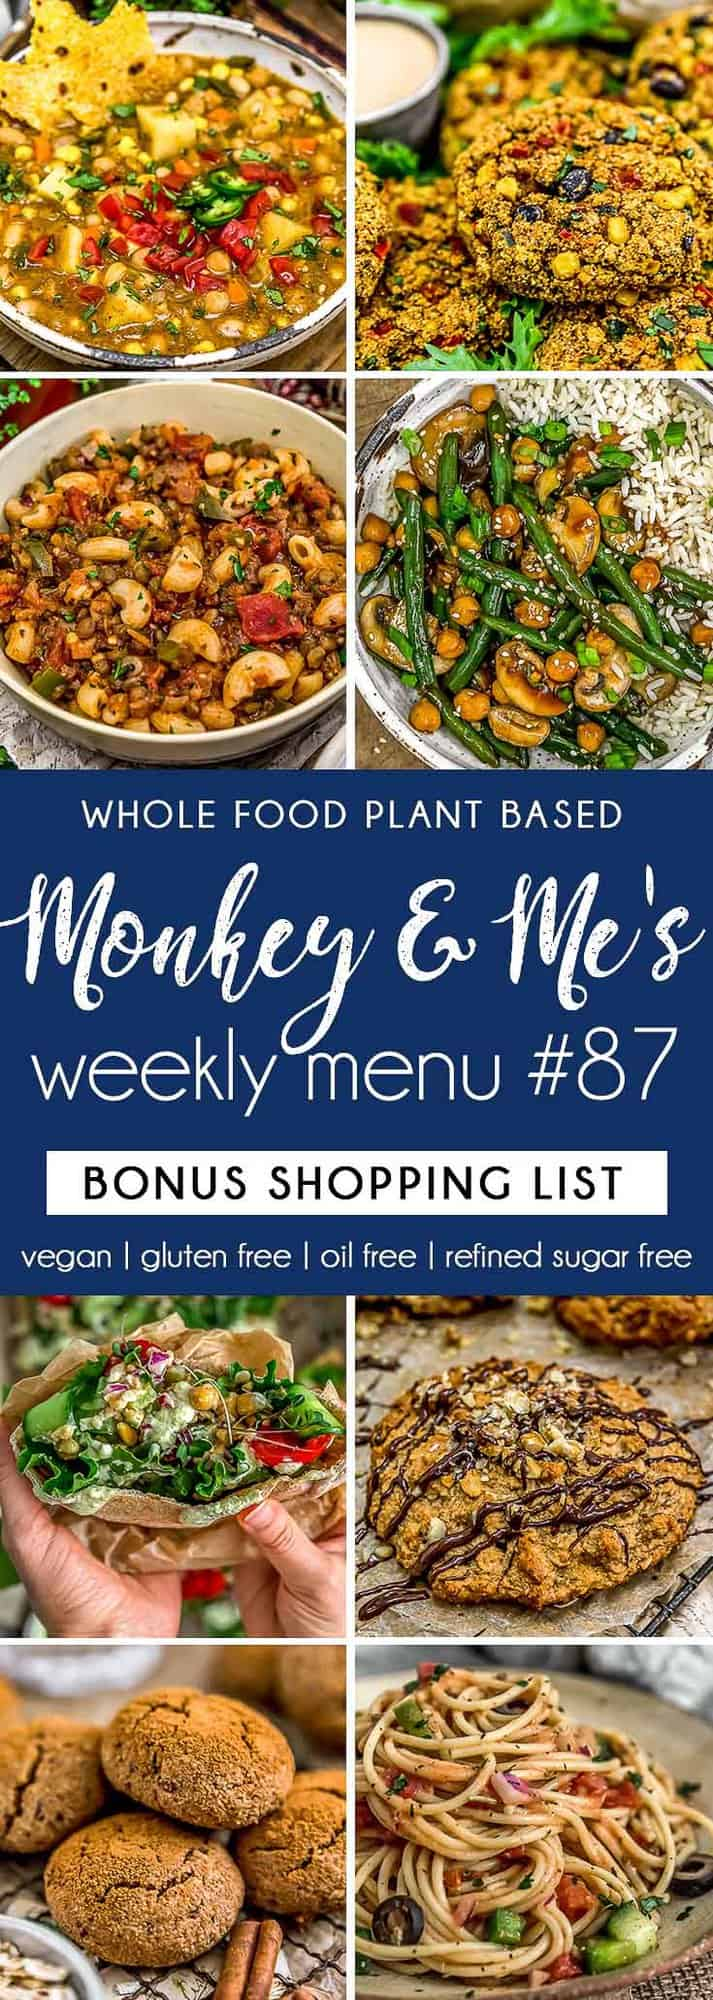 Monkey and Me's Menu 87 featuring 8 recipes